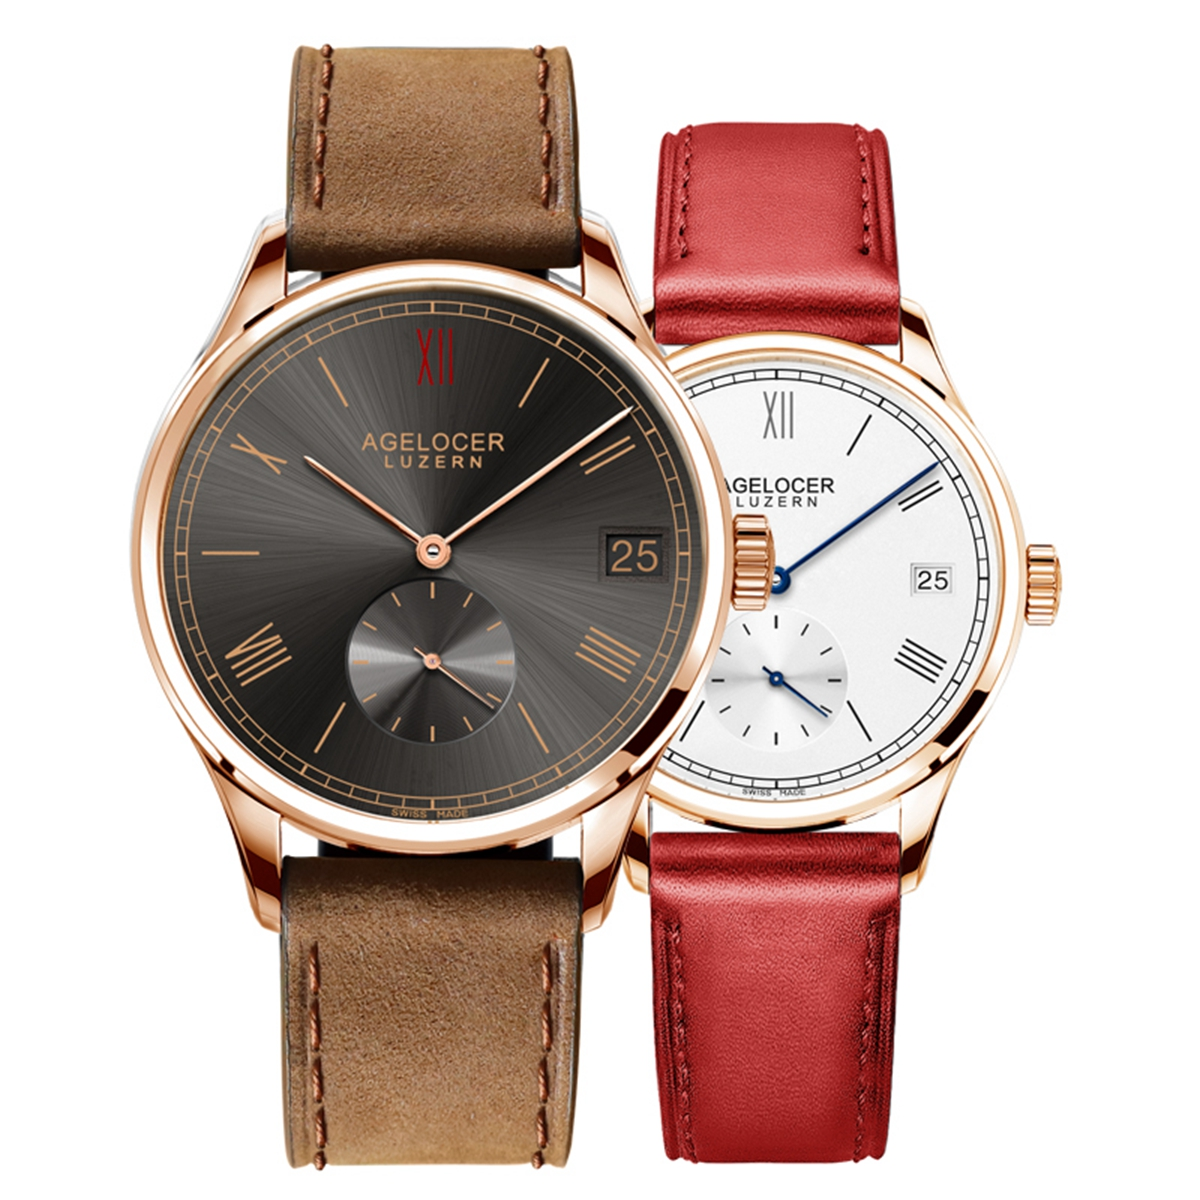 Agelocer Ultra Thin Couple Watches Rose Gold Automatic Watches for Men Women 1101A1-1202A1GB